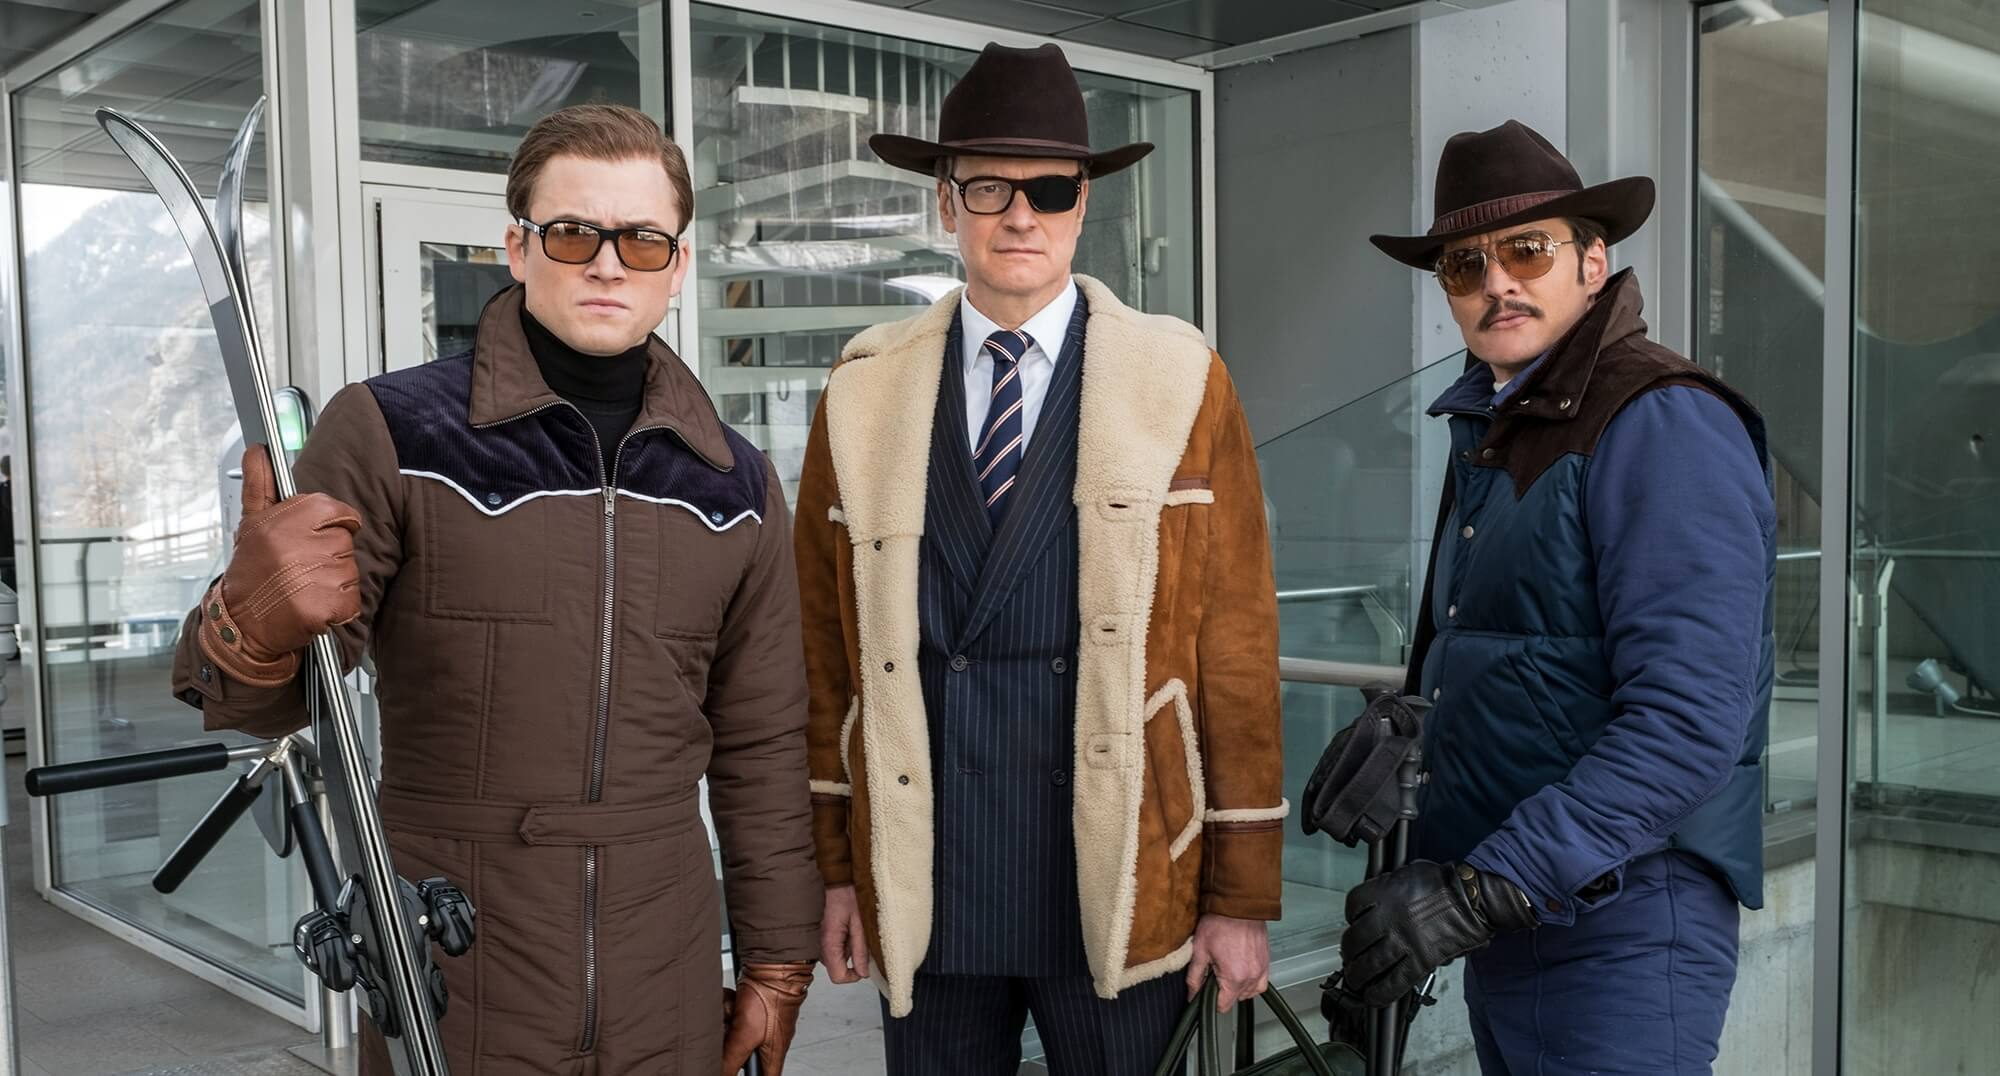 [CLOSED] Win Limited Edition 'Kingsman: The Golden Circle' Movie Premiums